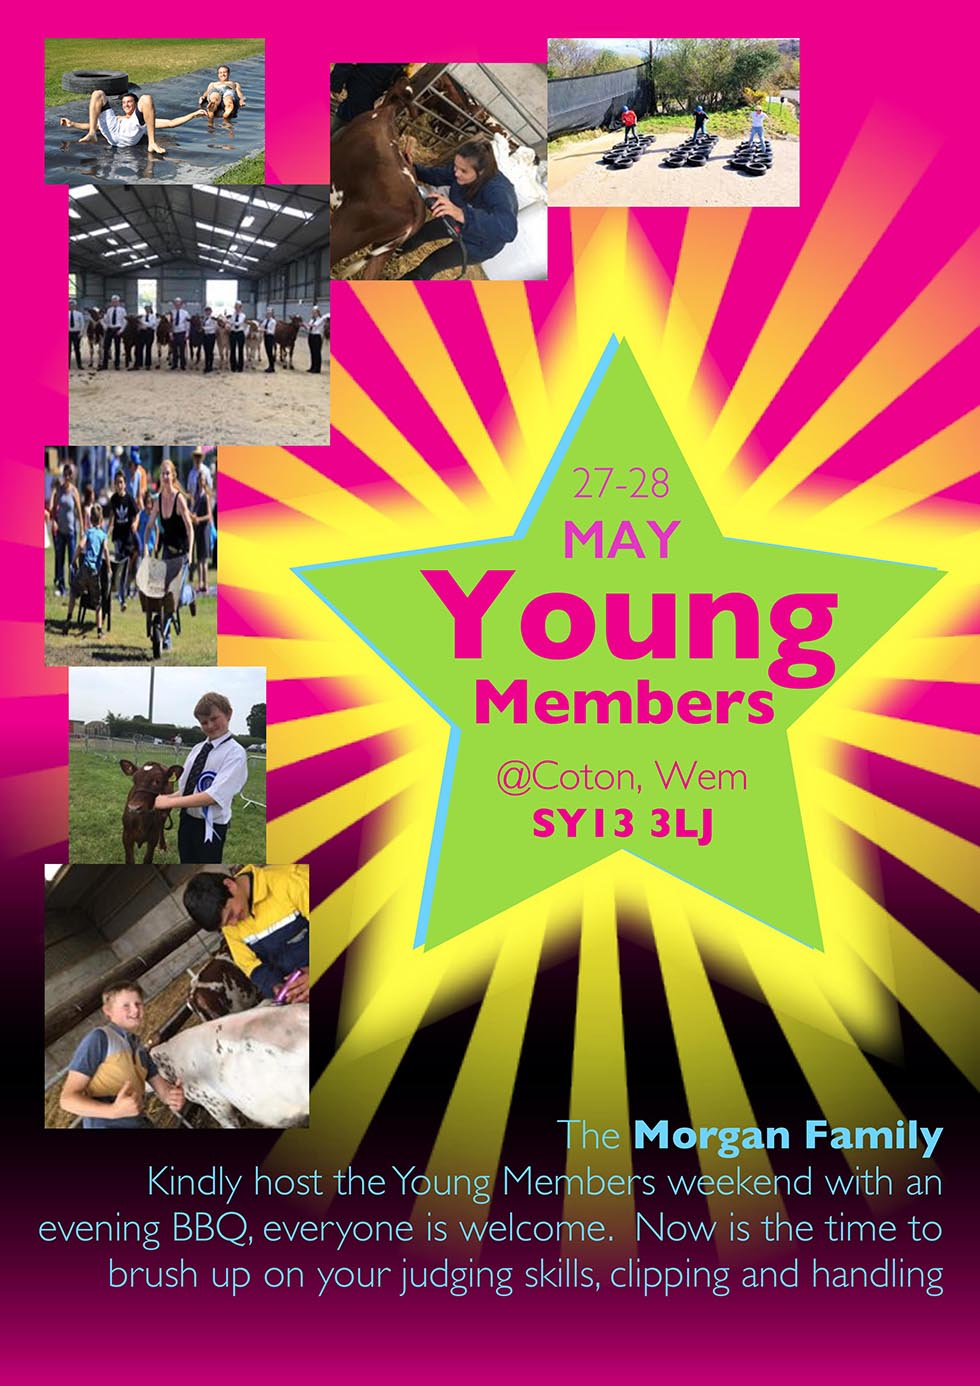 Young Members - 27th/28th May